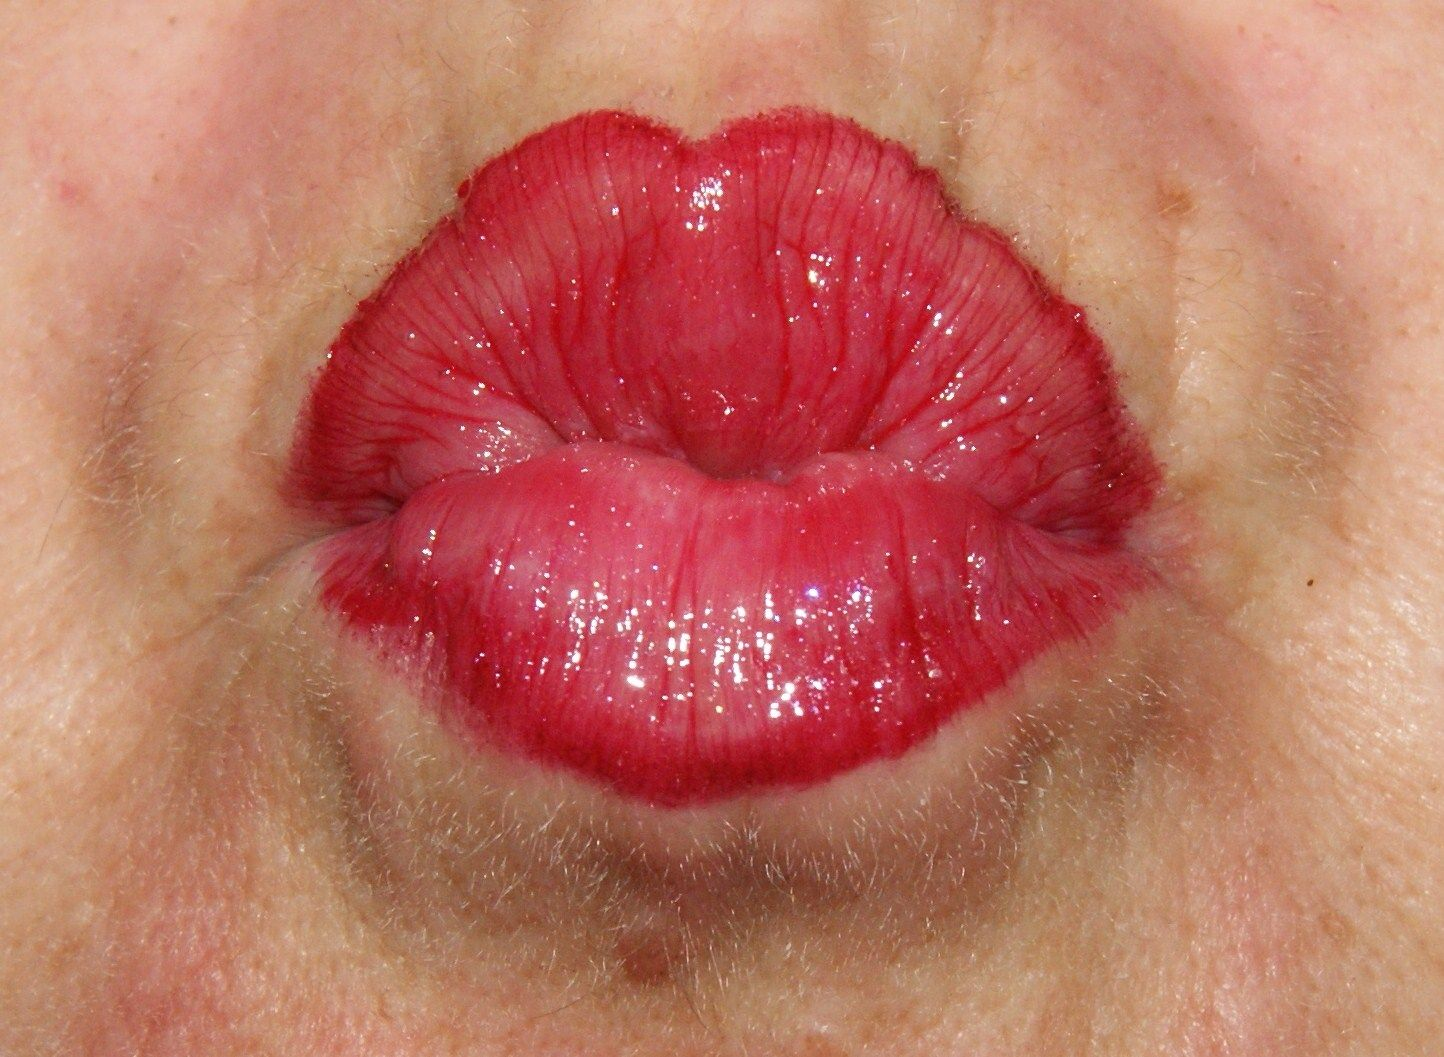 Romance special Different types of Kisses with Pictures